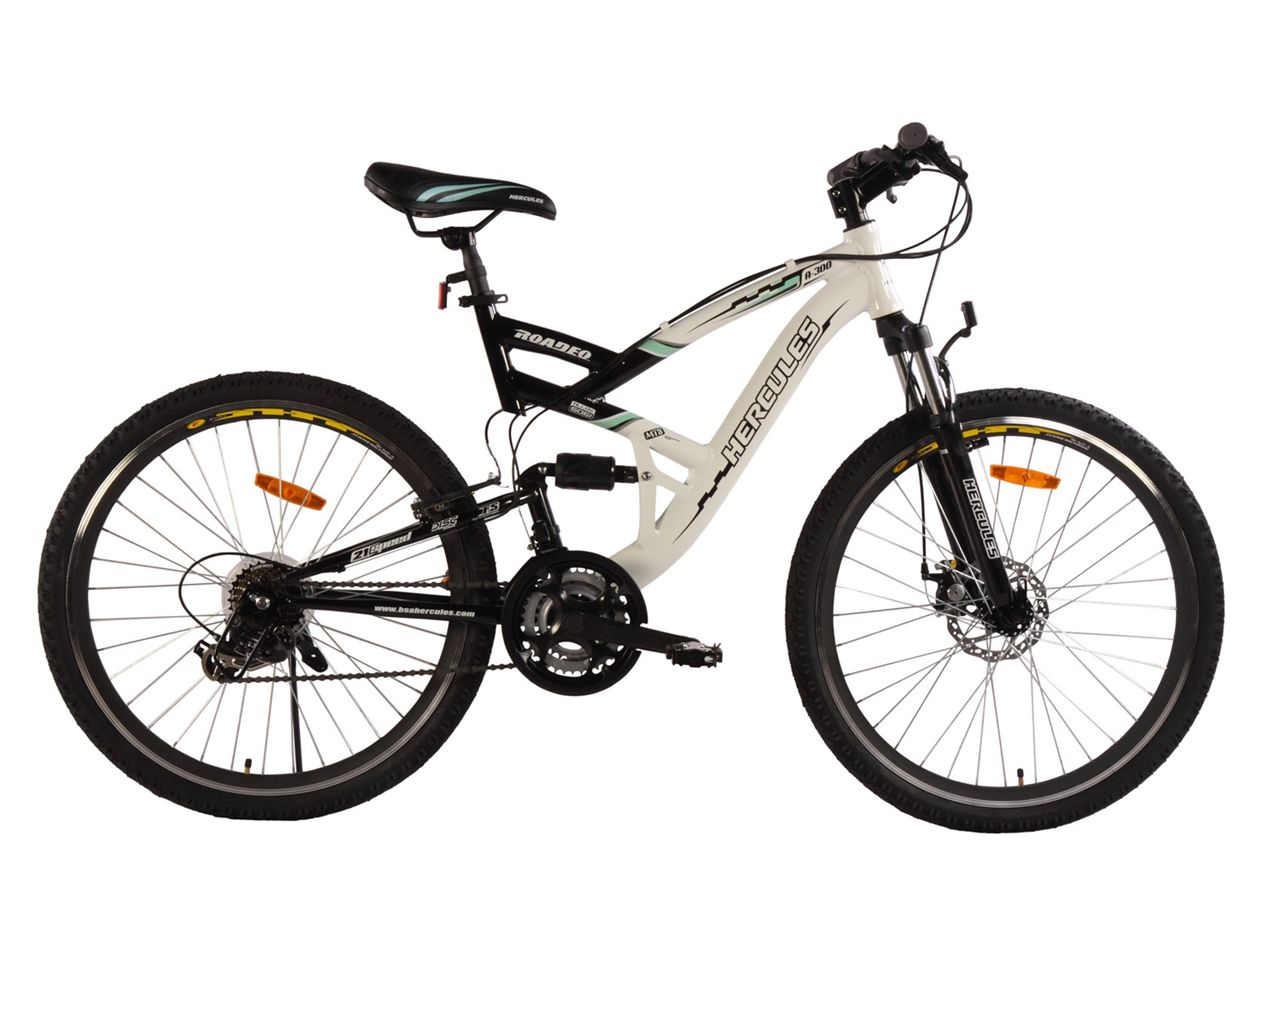 Hercules Roadeo A-300 Bicycle available in colors red ...